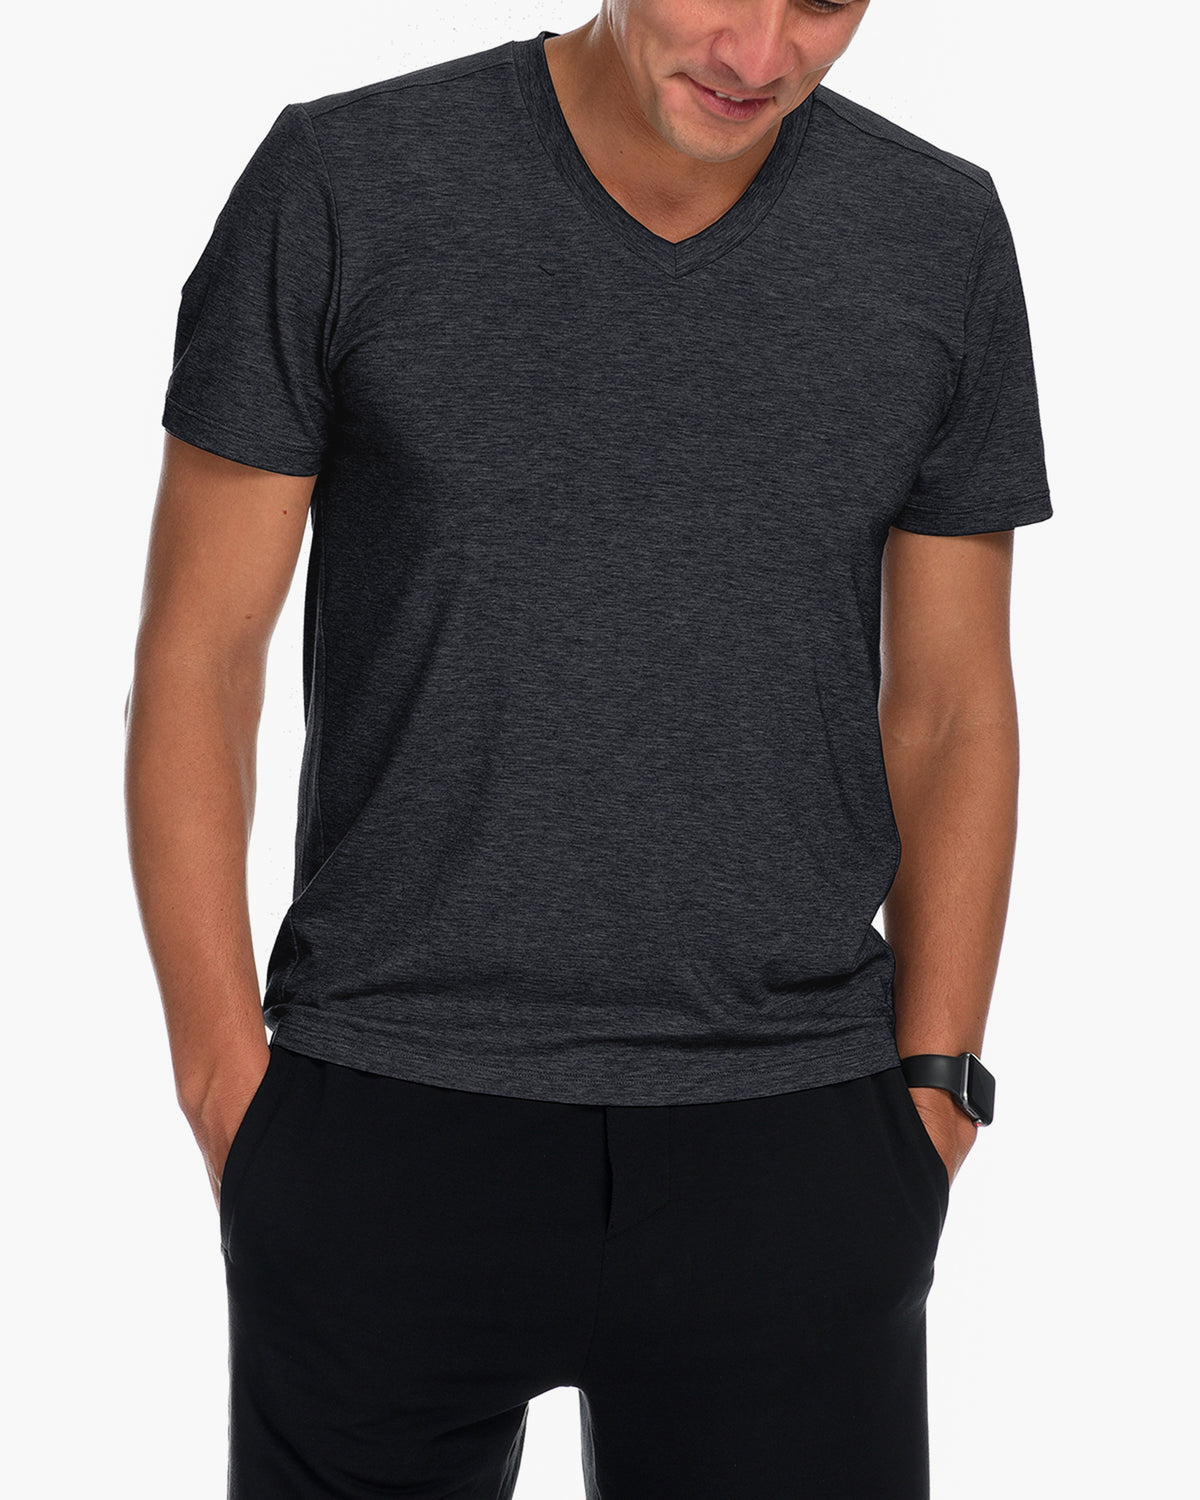 Men's Mission Short Sleeve V-Neck